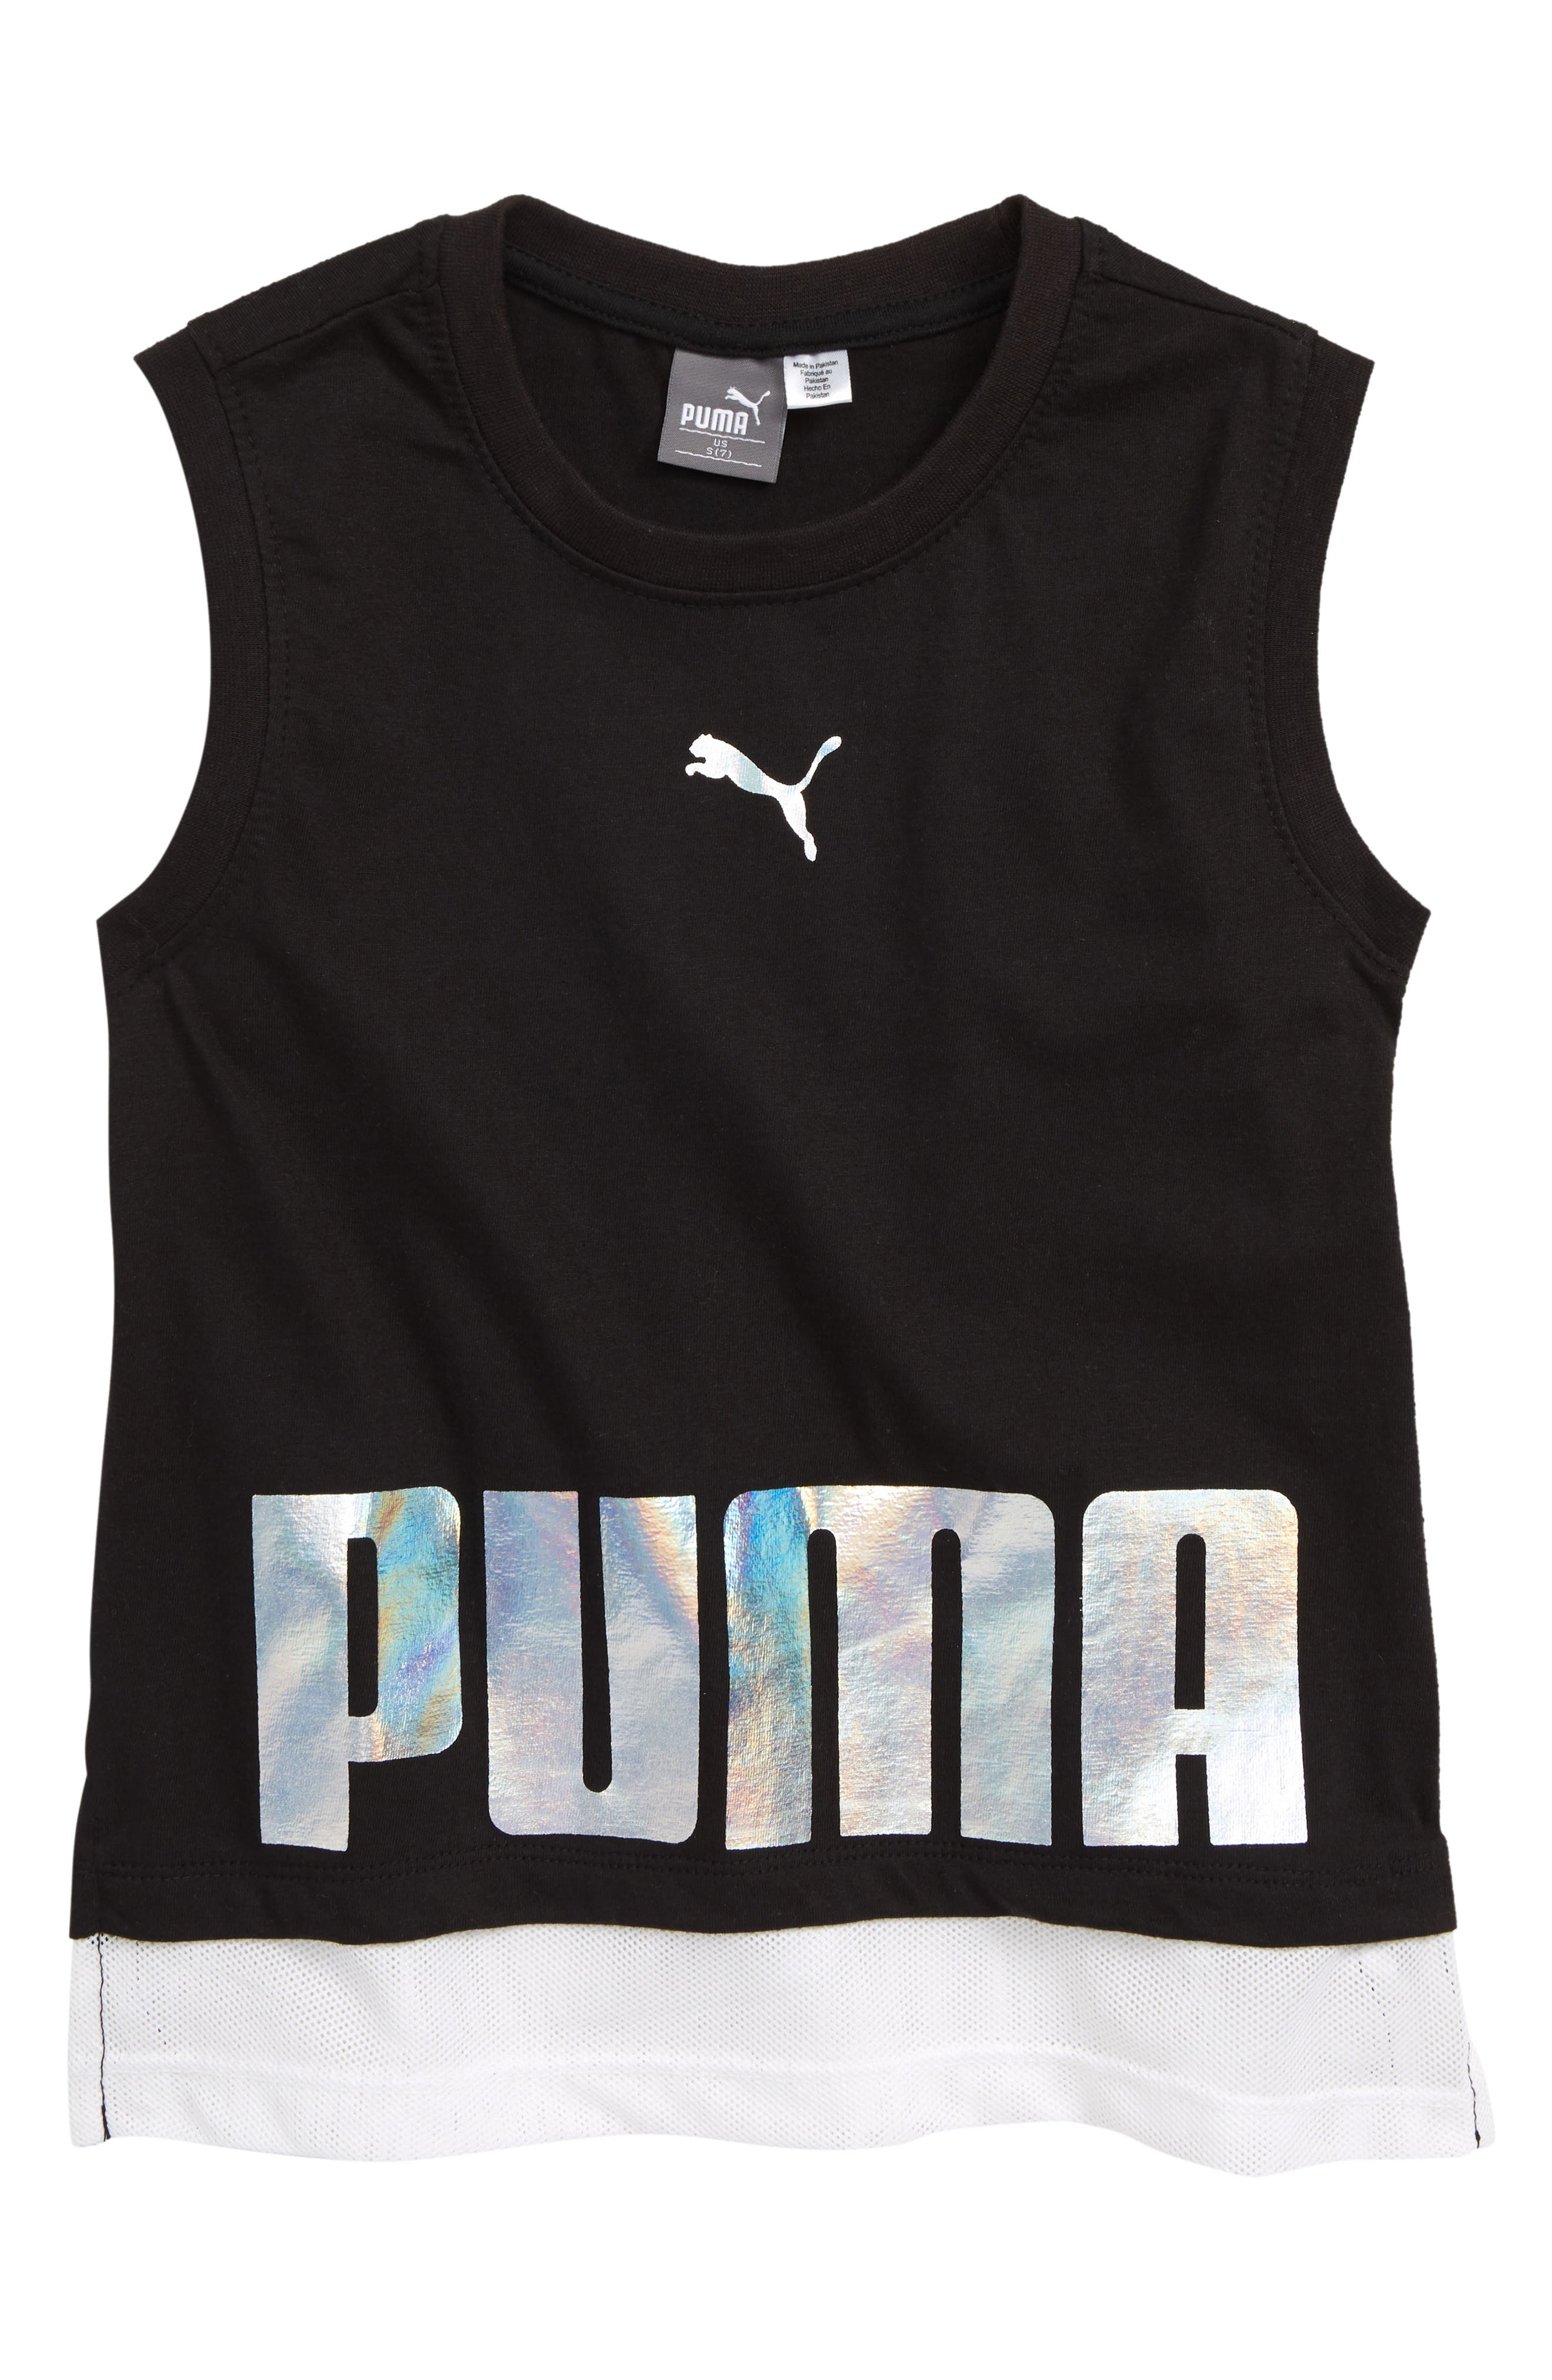 PUMA, Metallic Logo Mesh Hem Tee, Main thumbnail 1, color, PUMA BLACK